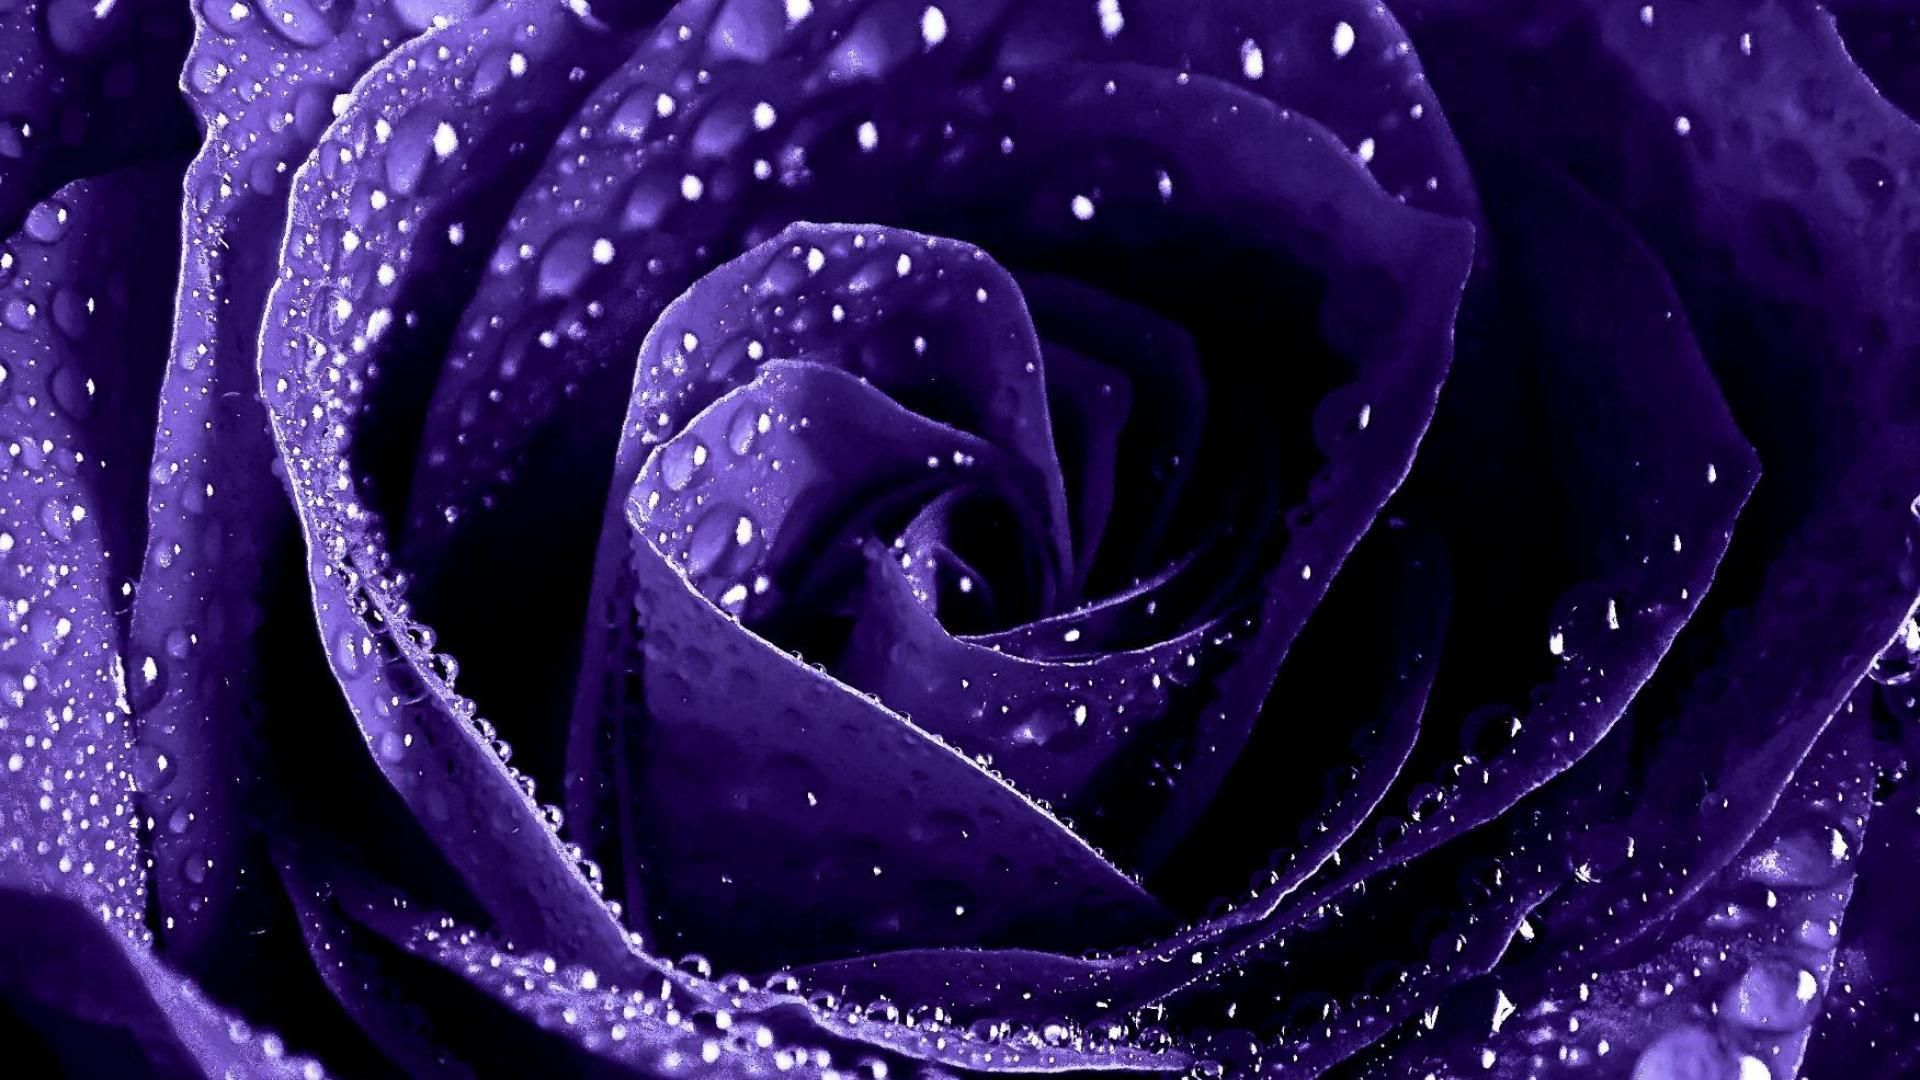 Wet purple rose close up wallpapers and images ...